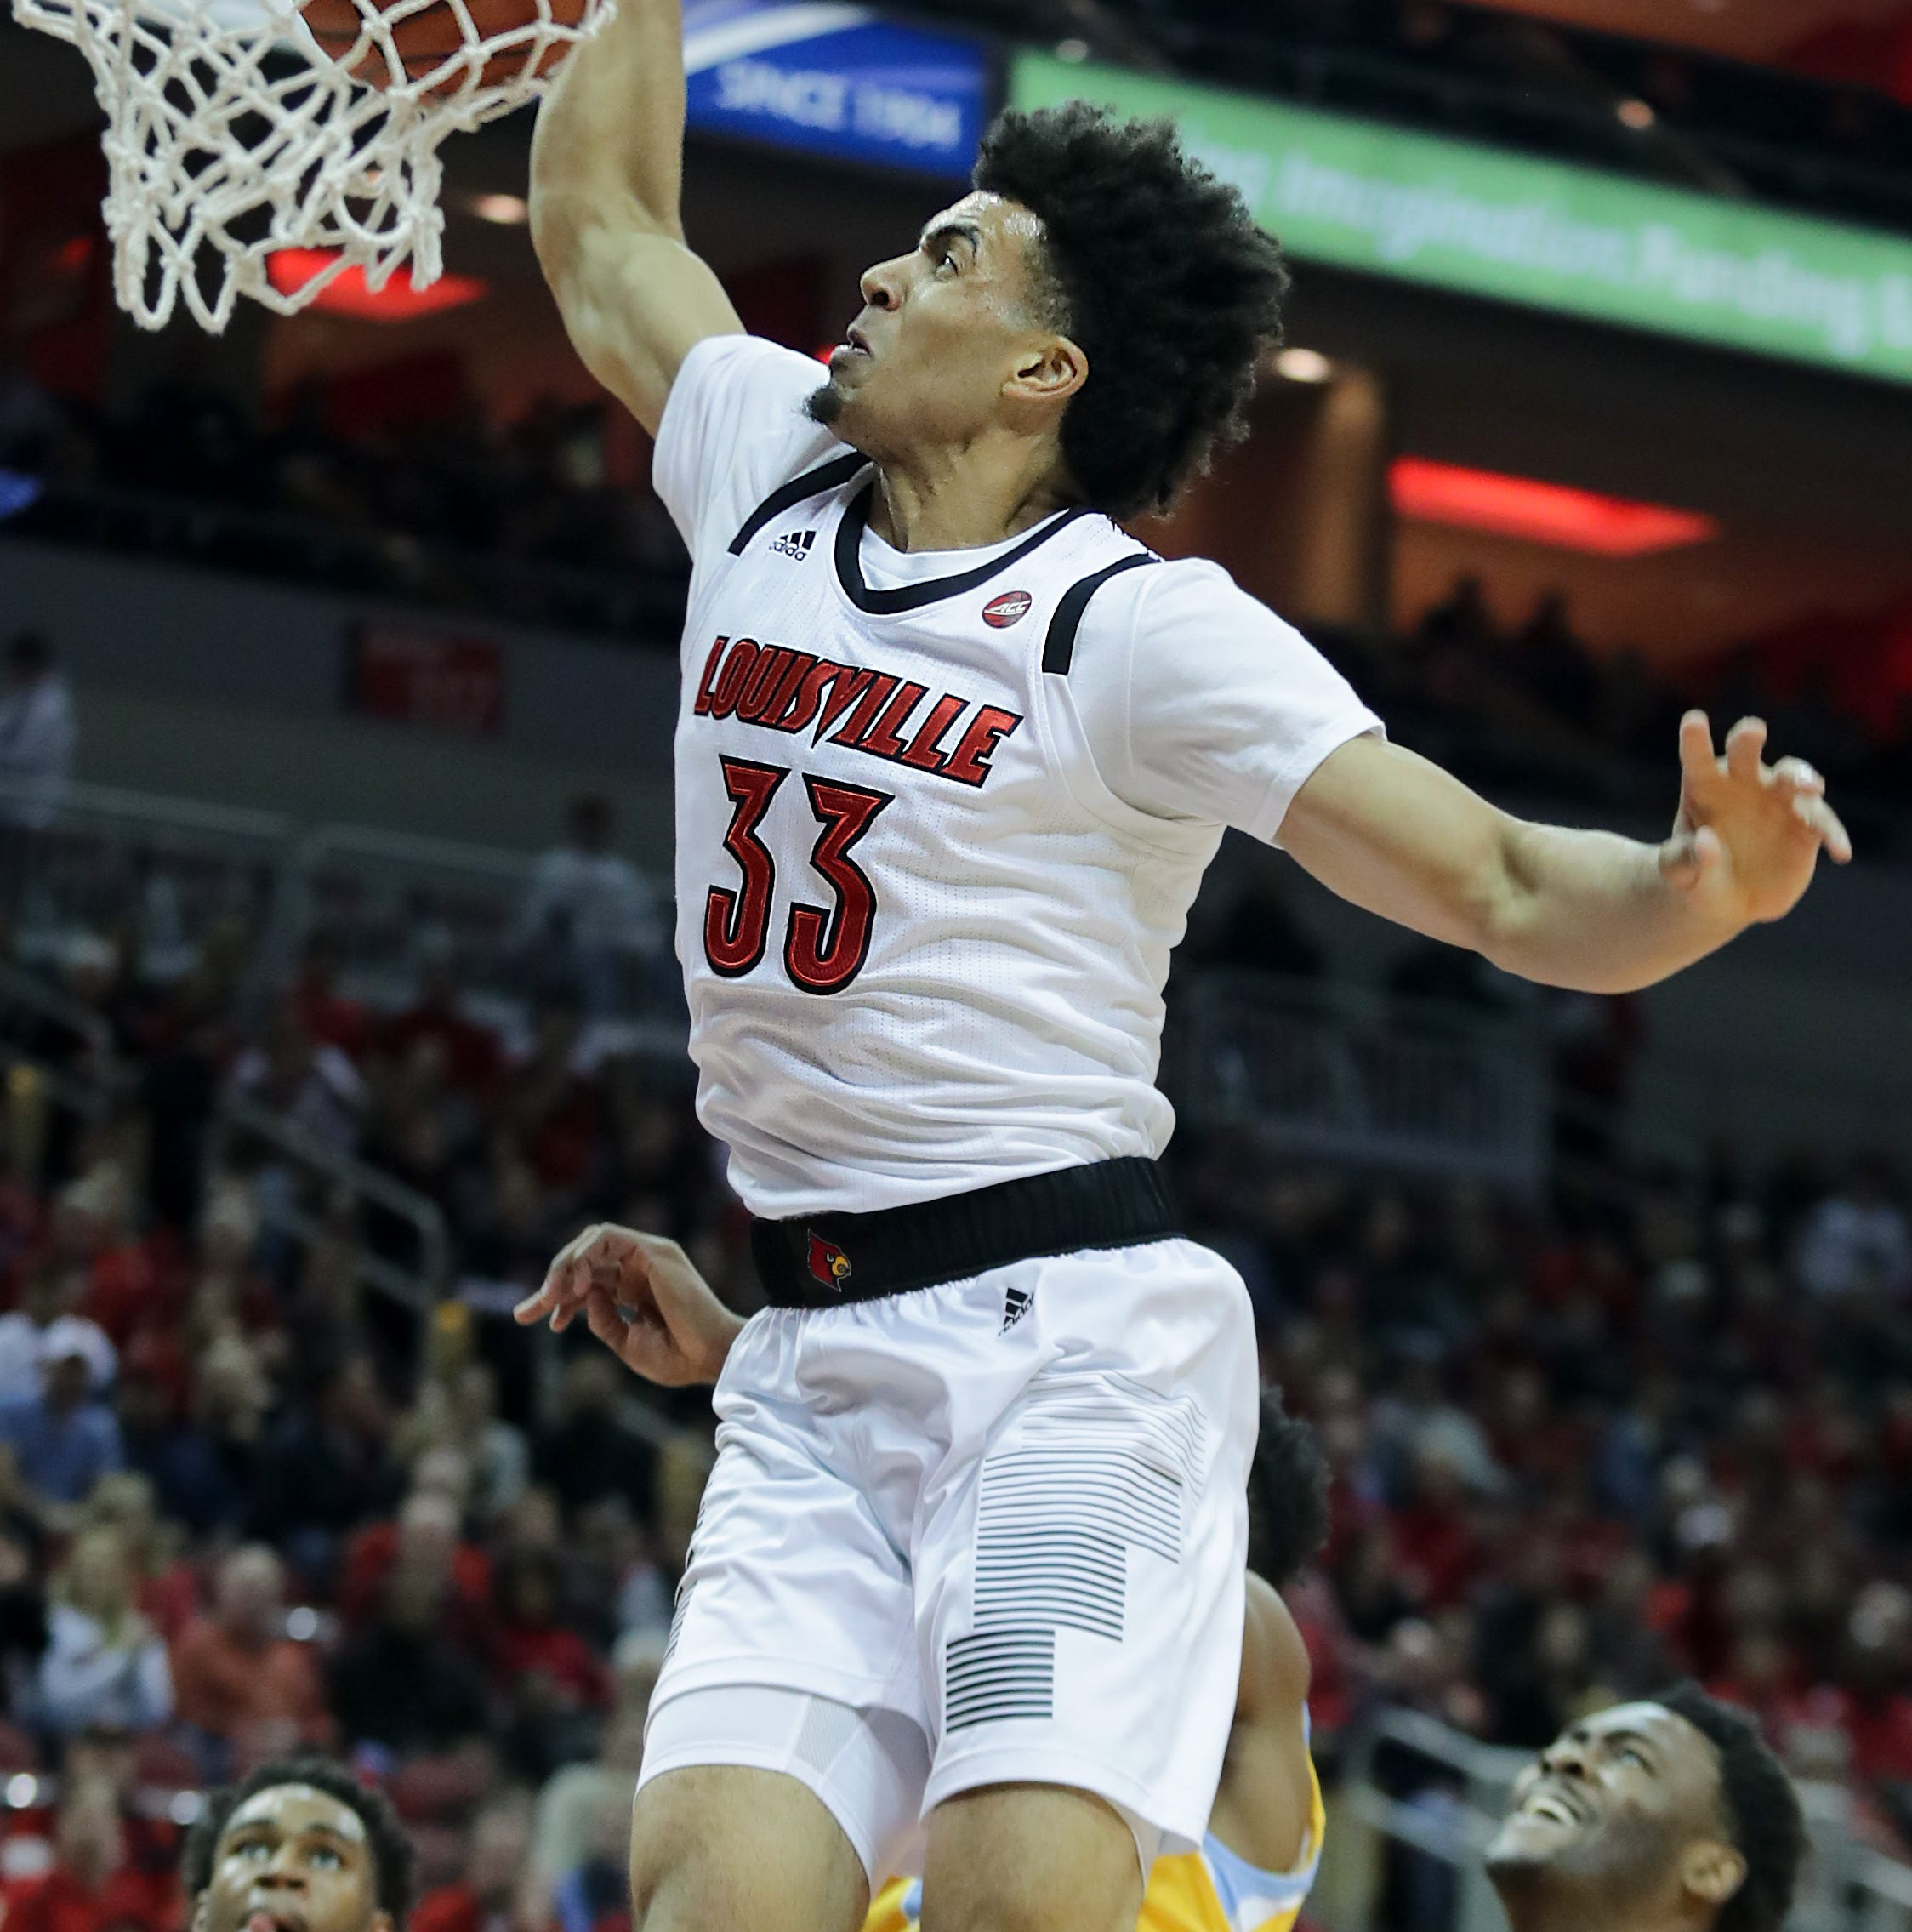 Key takeaways from Louisville basketball's stomping of Southern